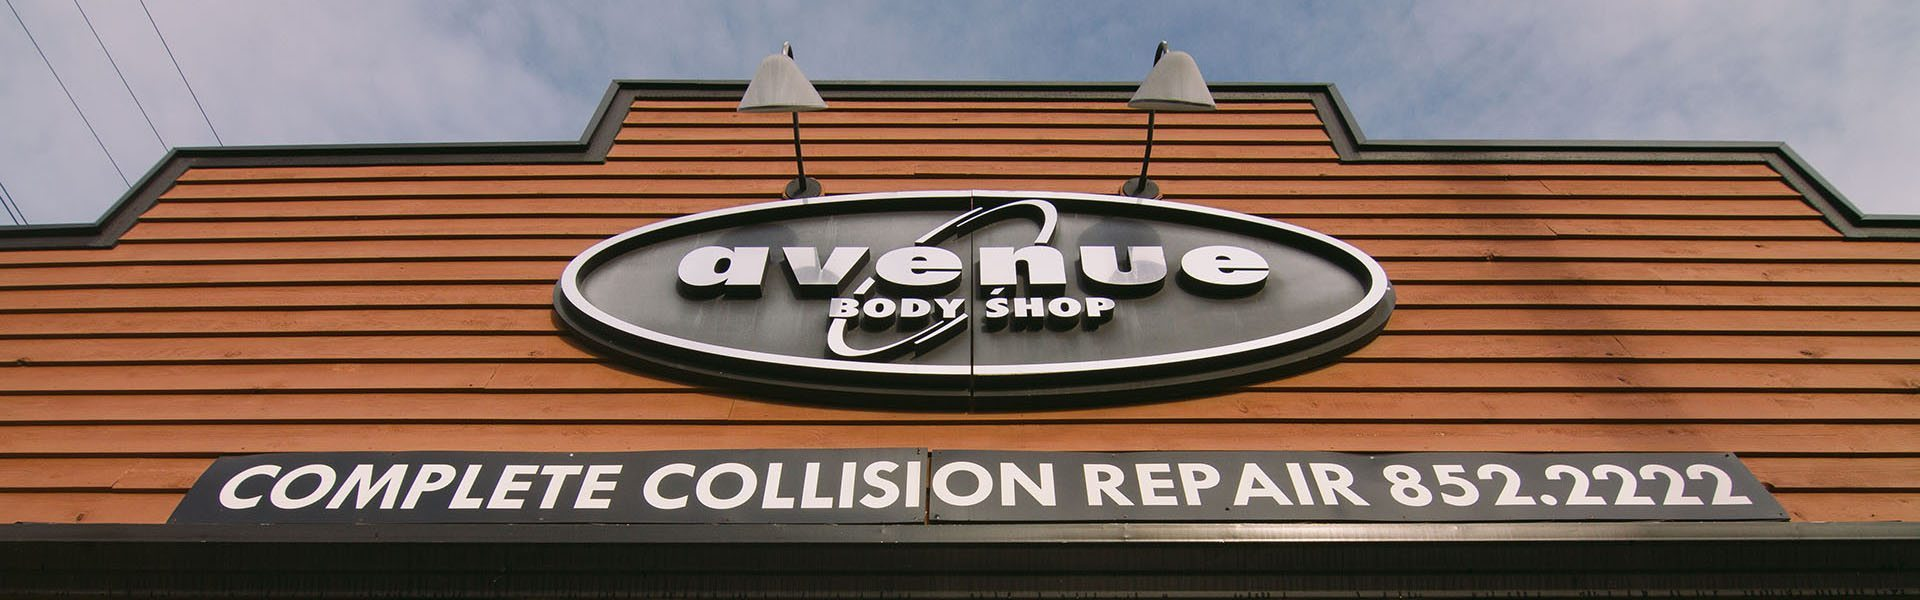 abbotsford-body-shop